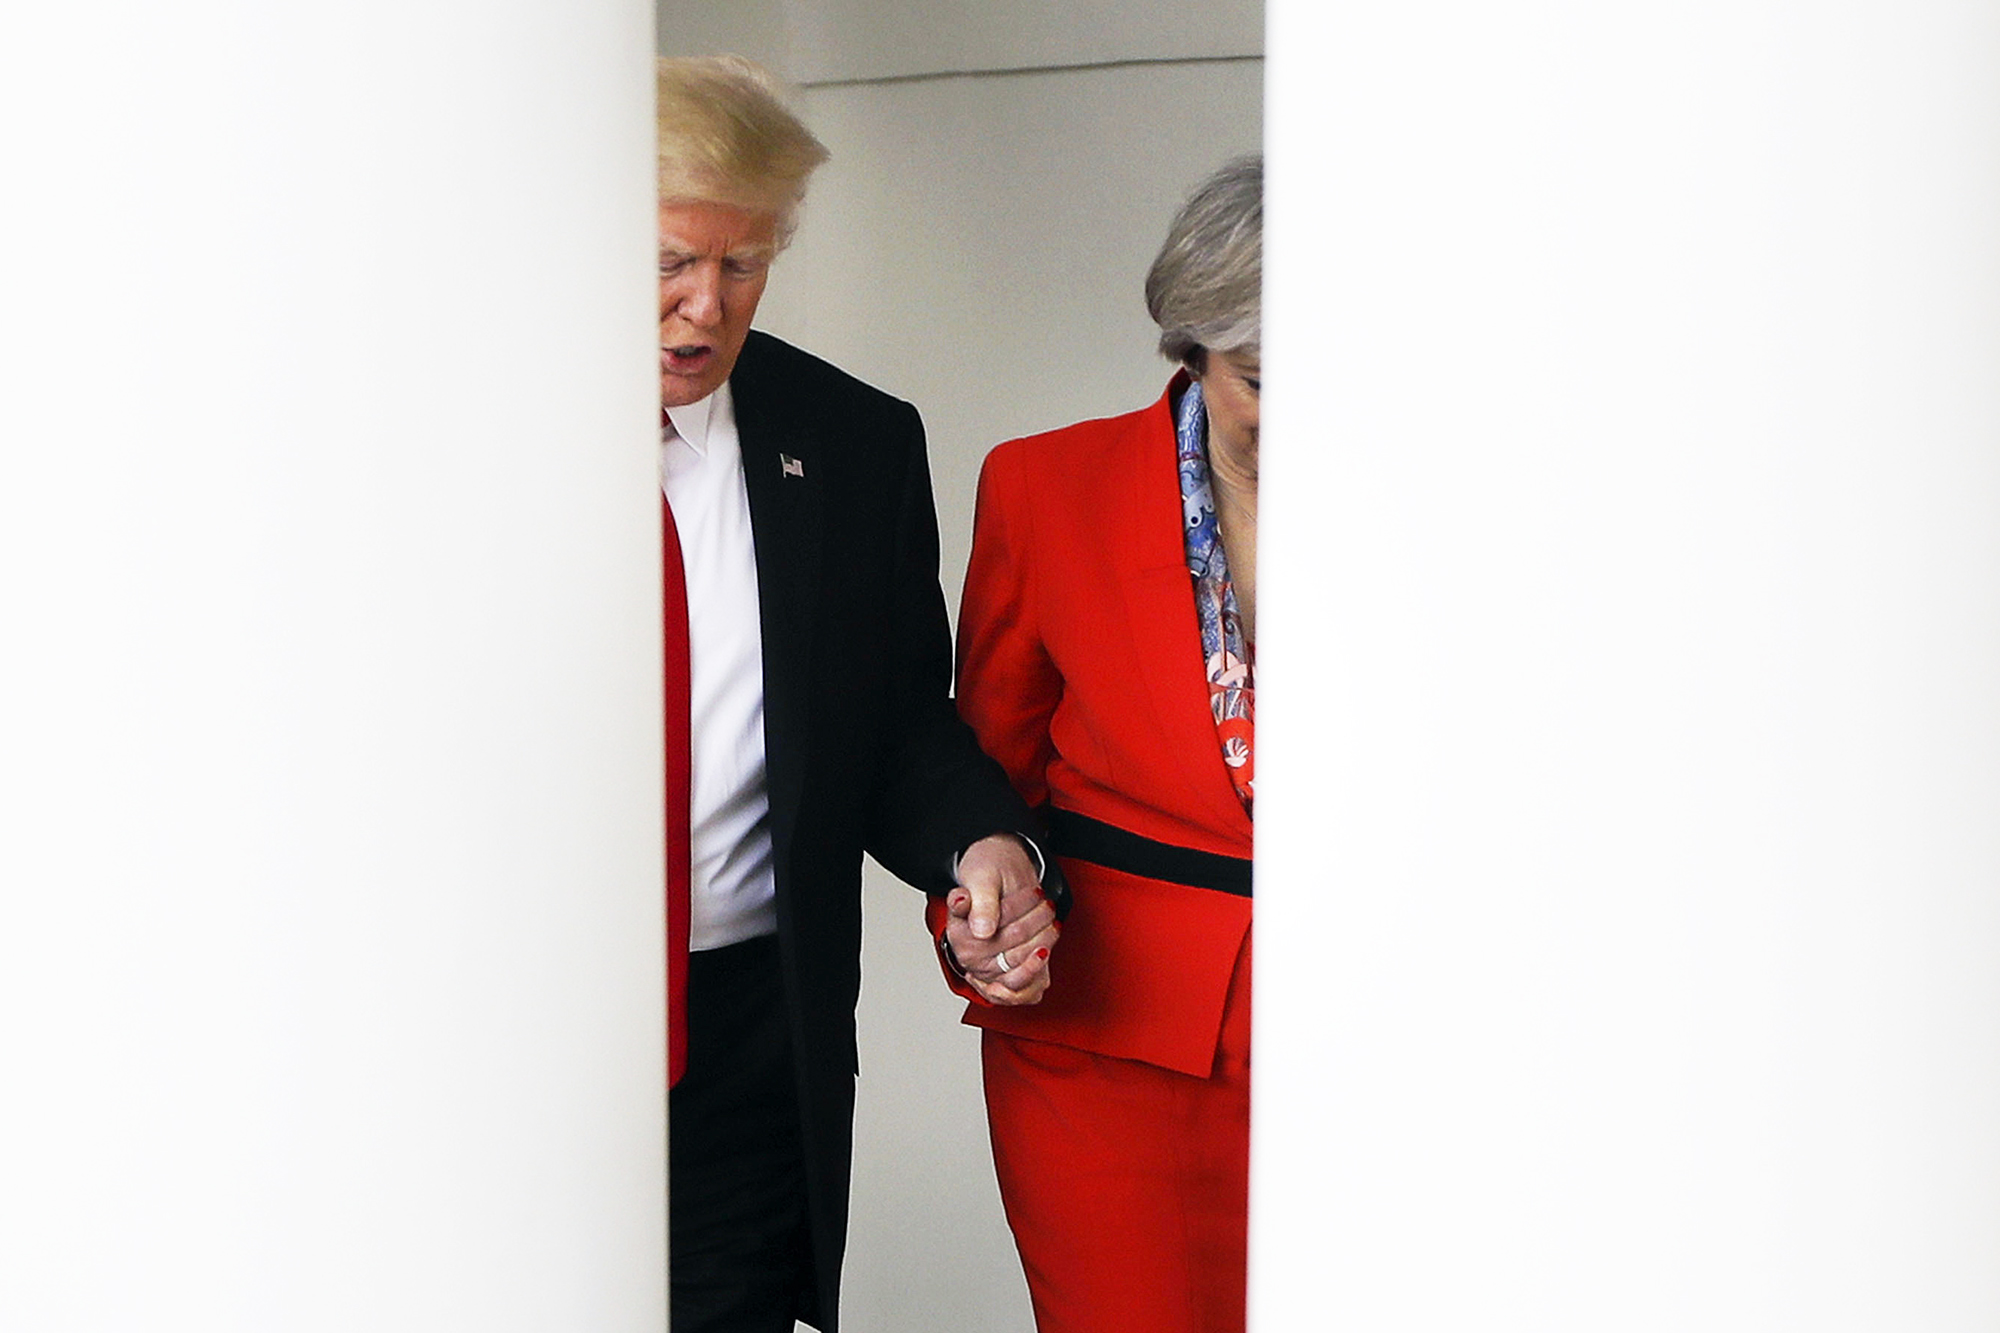 Donald Trump holds hands with British Prime Minister Theresa May, as they walk along the colonnade of the White House in Washington, D.C., on Jan. 27, 2017.